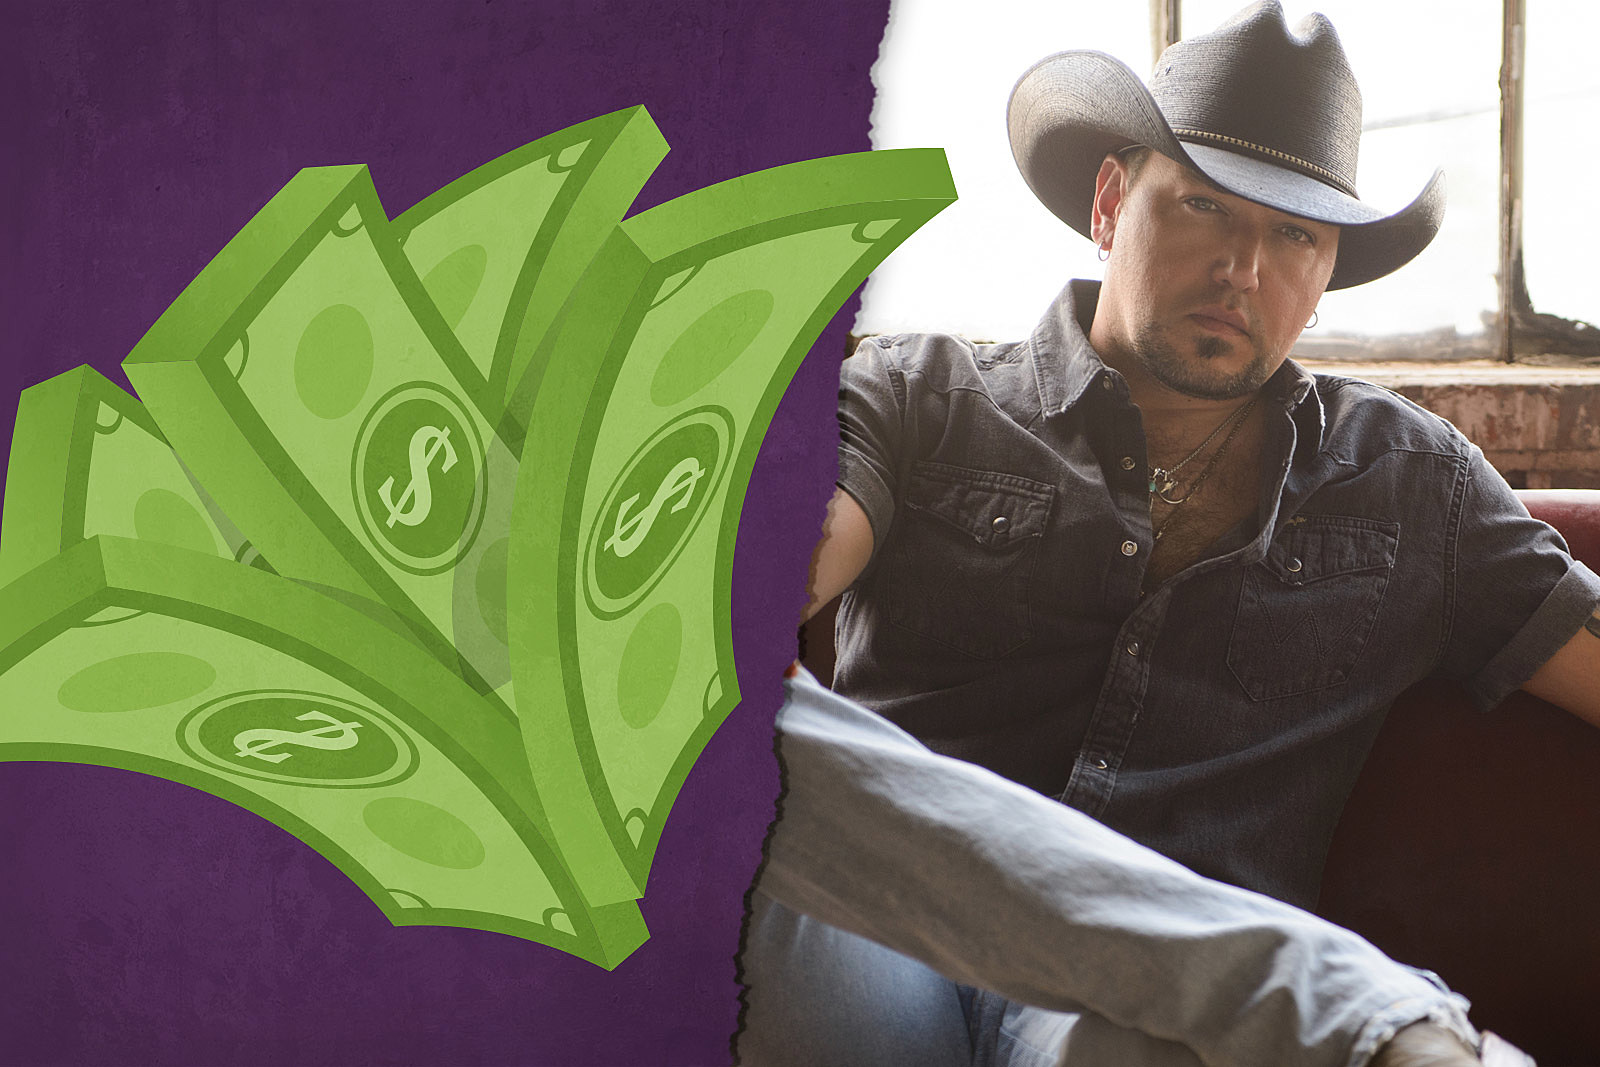 Enter The Pins For Your Chance To Meet Jason Aldean Or Win 5k